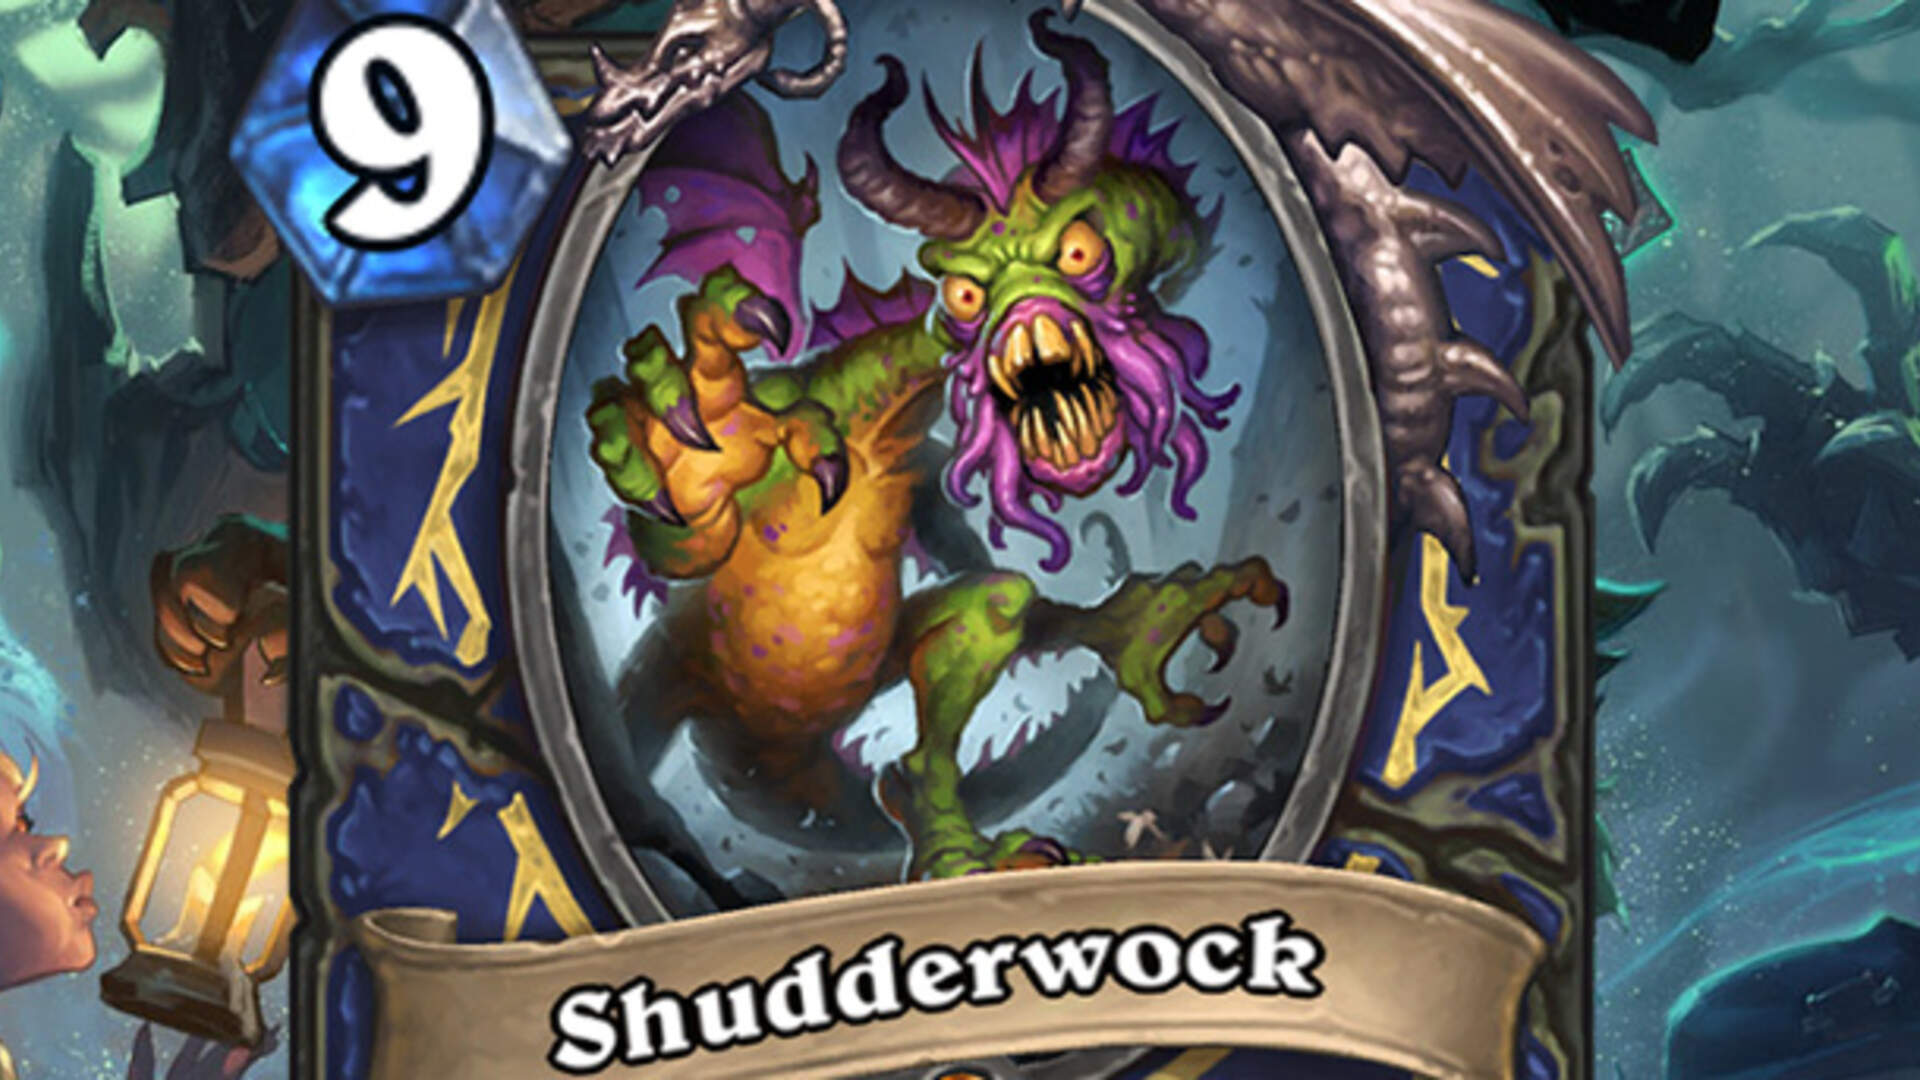 Witchwood's Newly-Revealed Shudderwock is Hearthstone's Most Complicated Card to Date